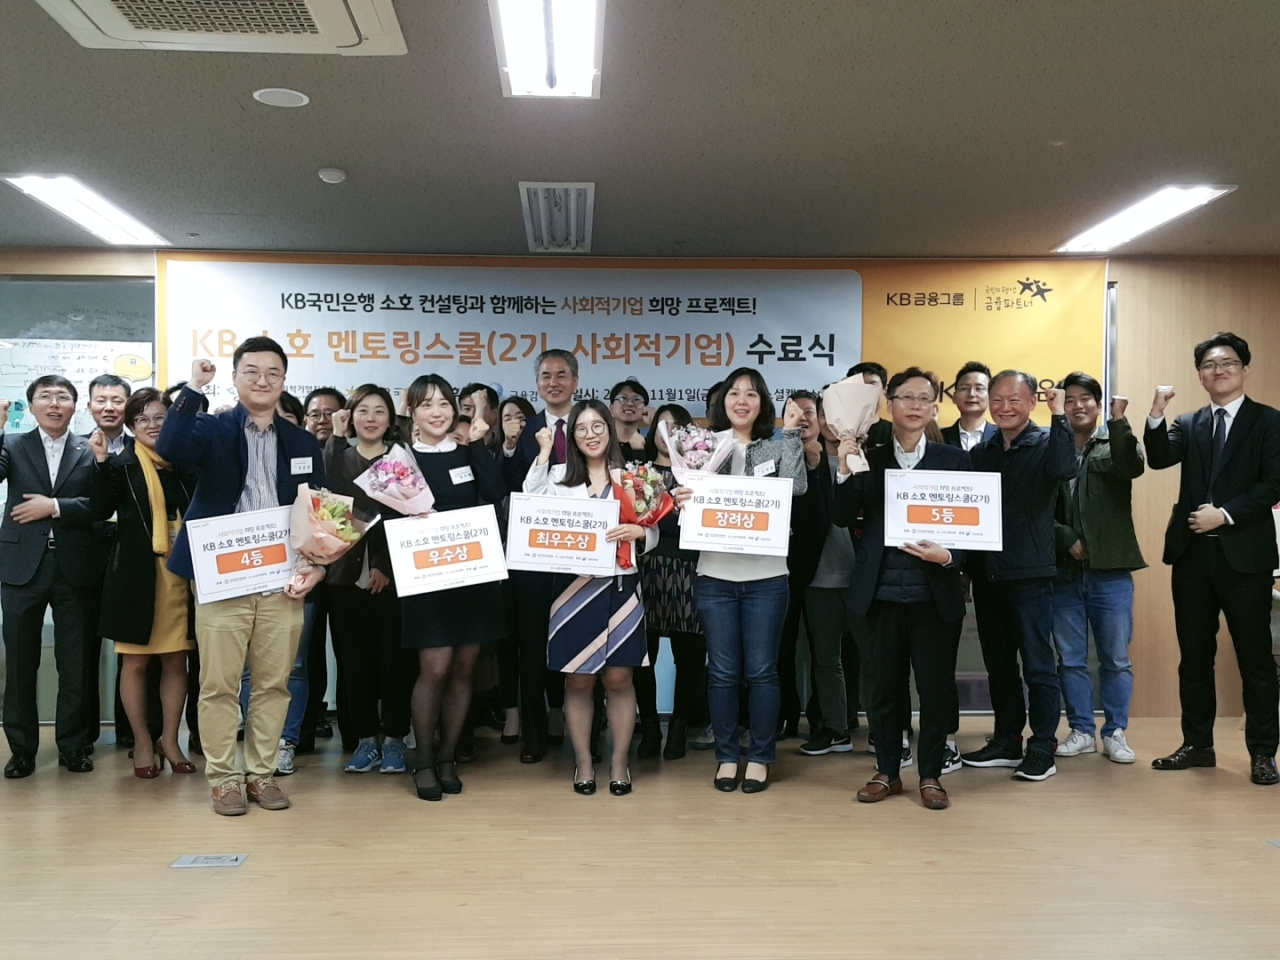 Participants of KB Soho Mentoring School pose for a photo after the graduation ceremony held at Social Campus On, a center that supports social enterprises in Seoul on Nov. 1. (KB Kookmin Bank)